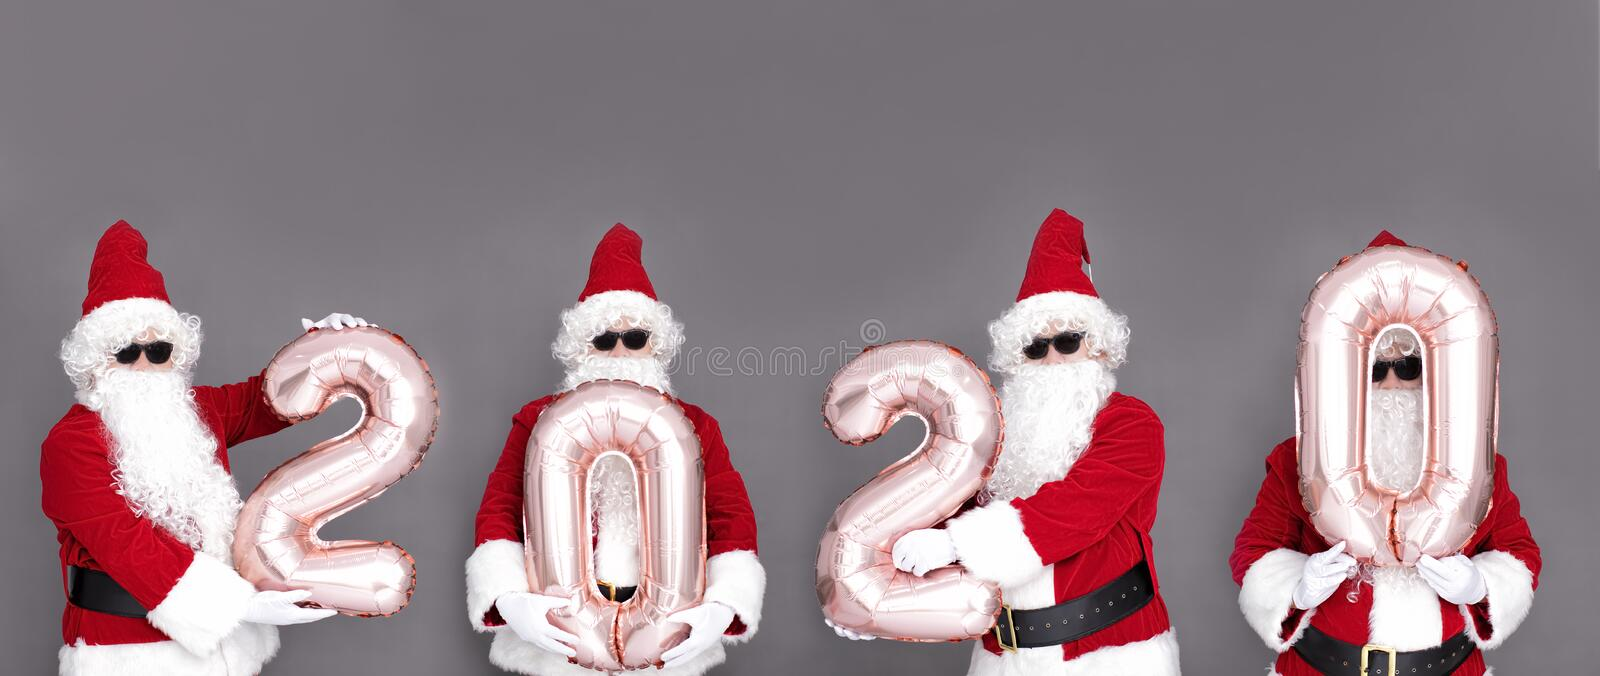 Merry Christmas and happy new year 2020  with cute Santa Claus royalty free stock image